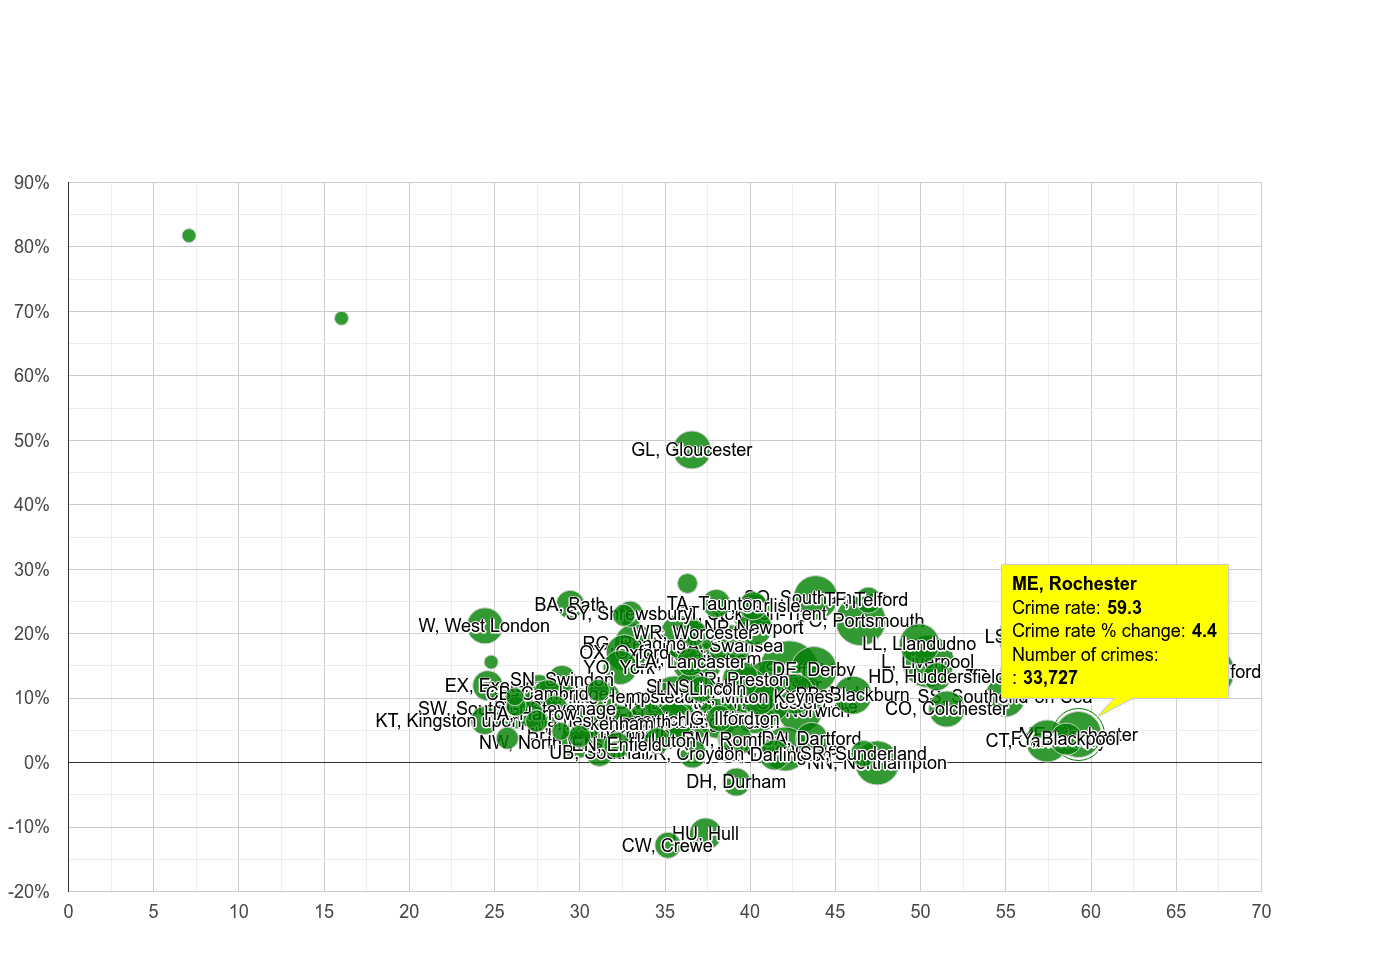 Rochester violent crime rate compared to other areas